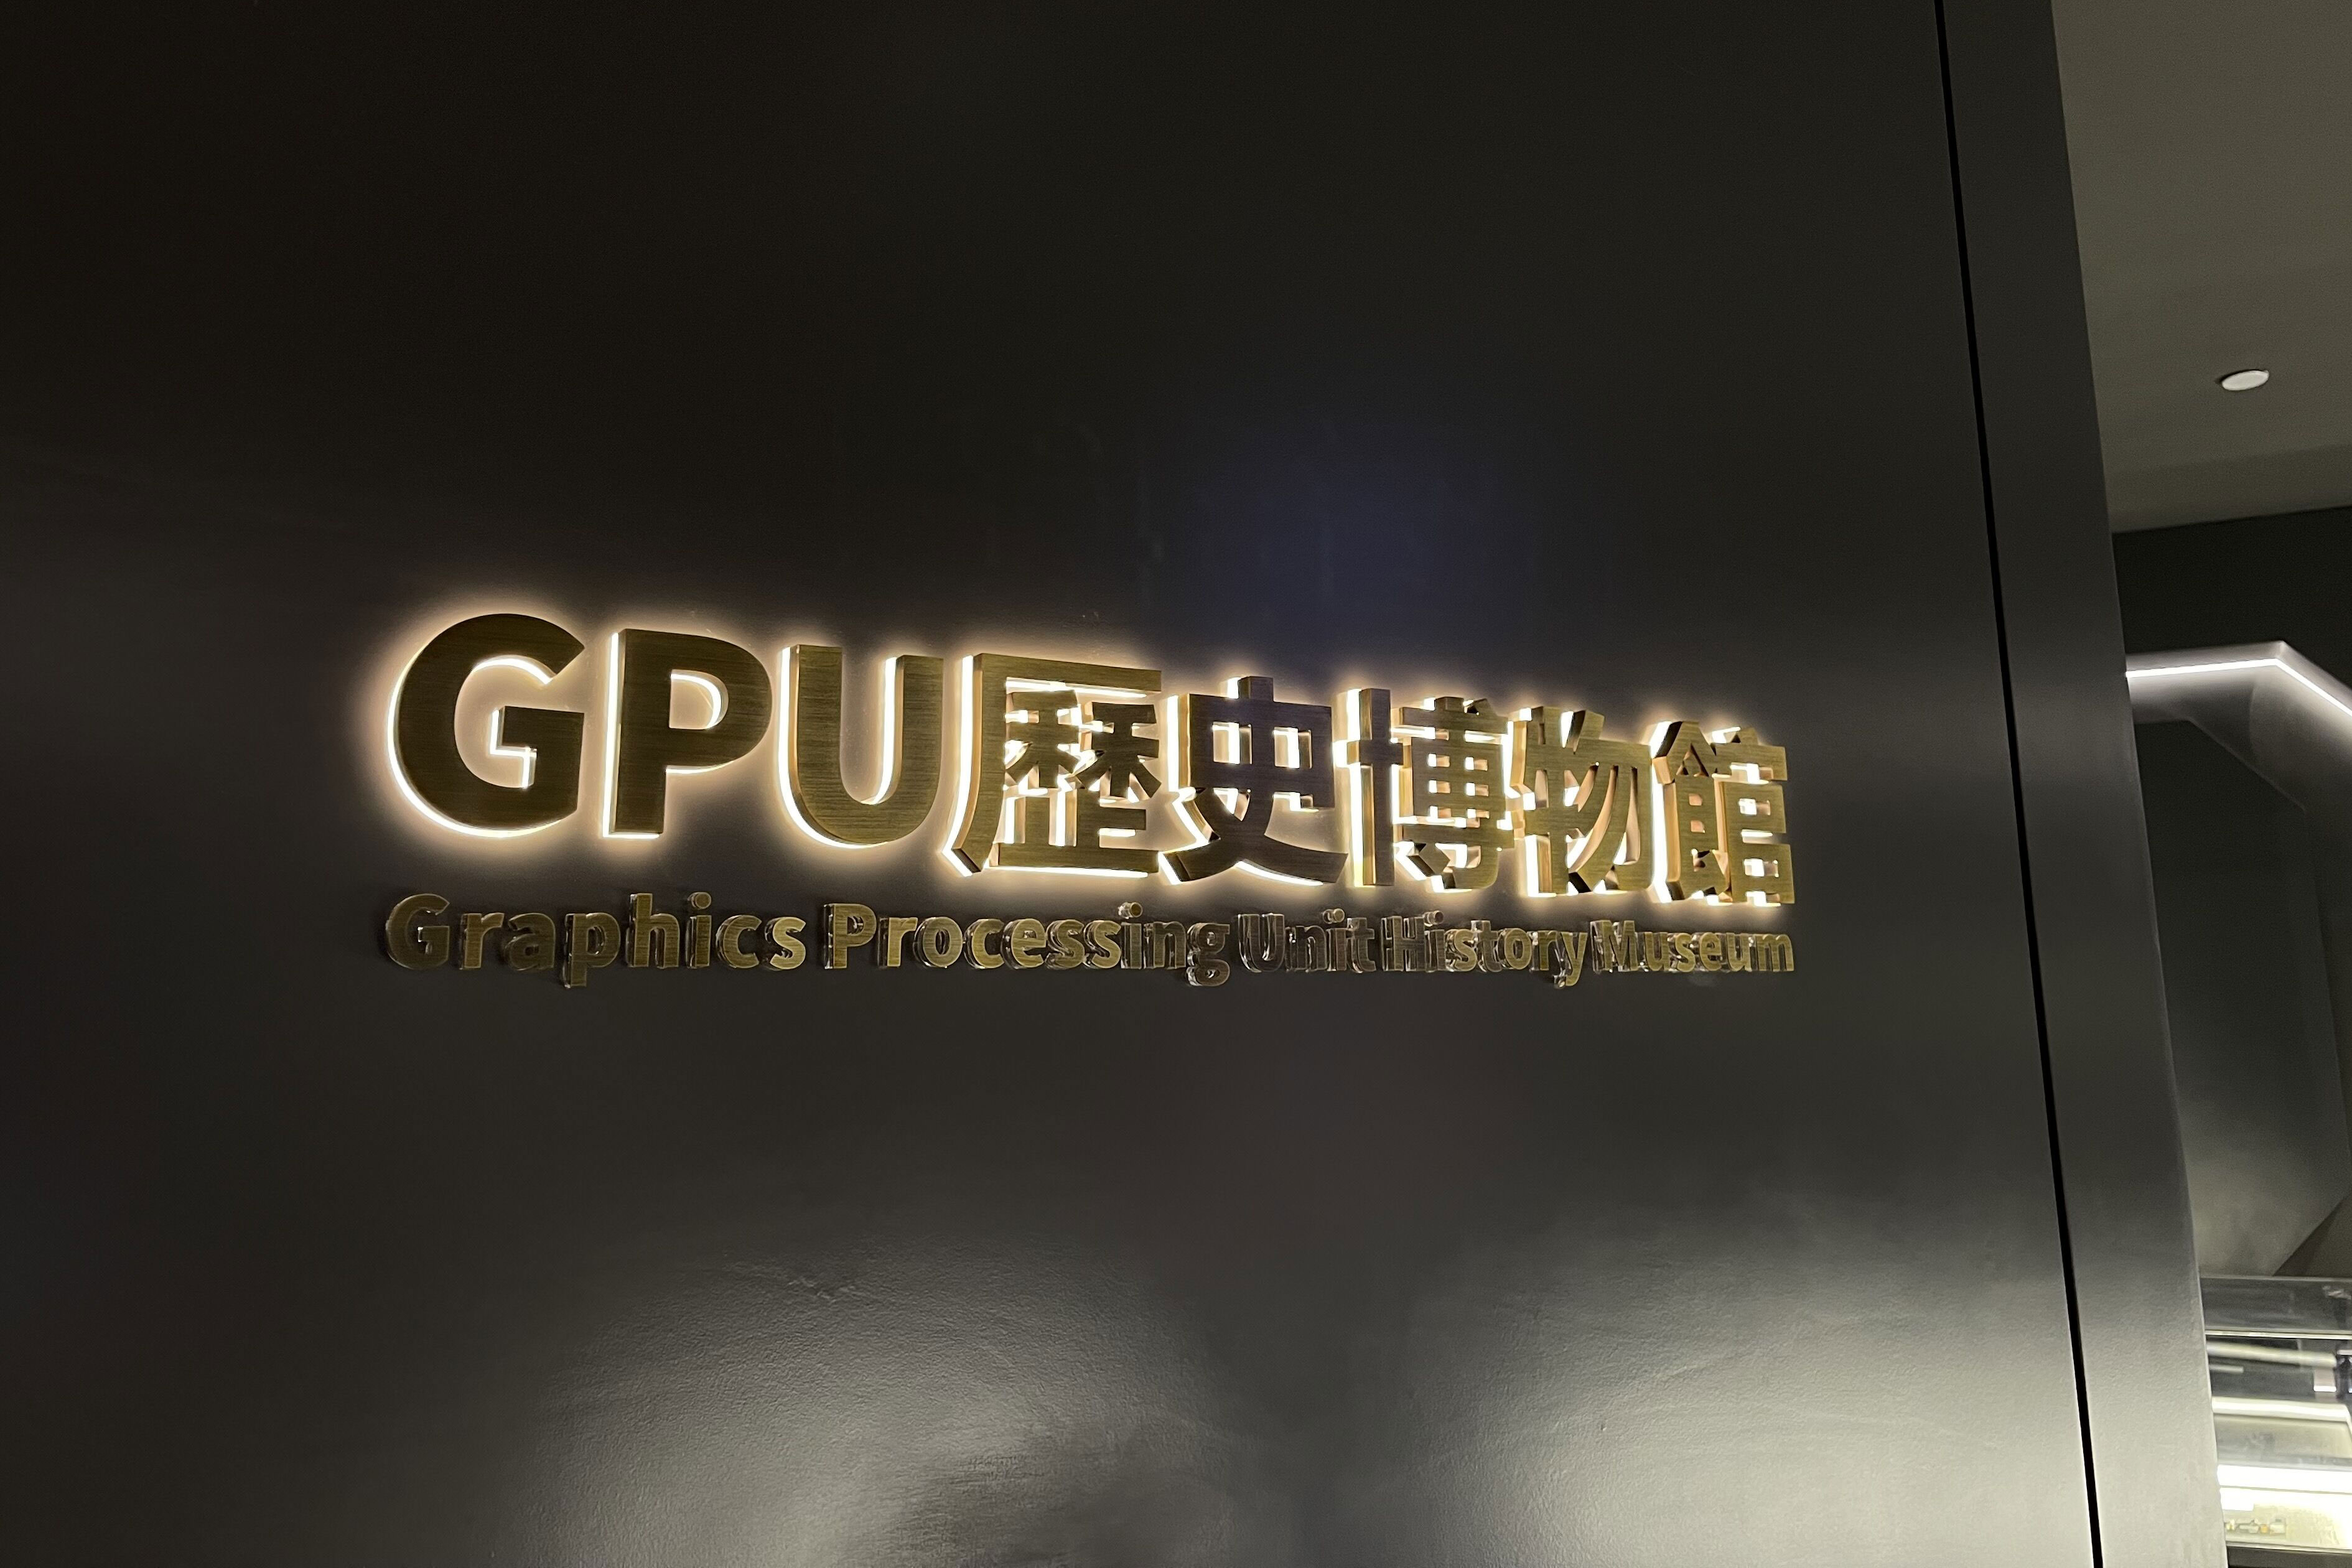 Colorful's GPU museum display with graphics cards from 2000 to 2021